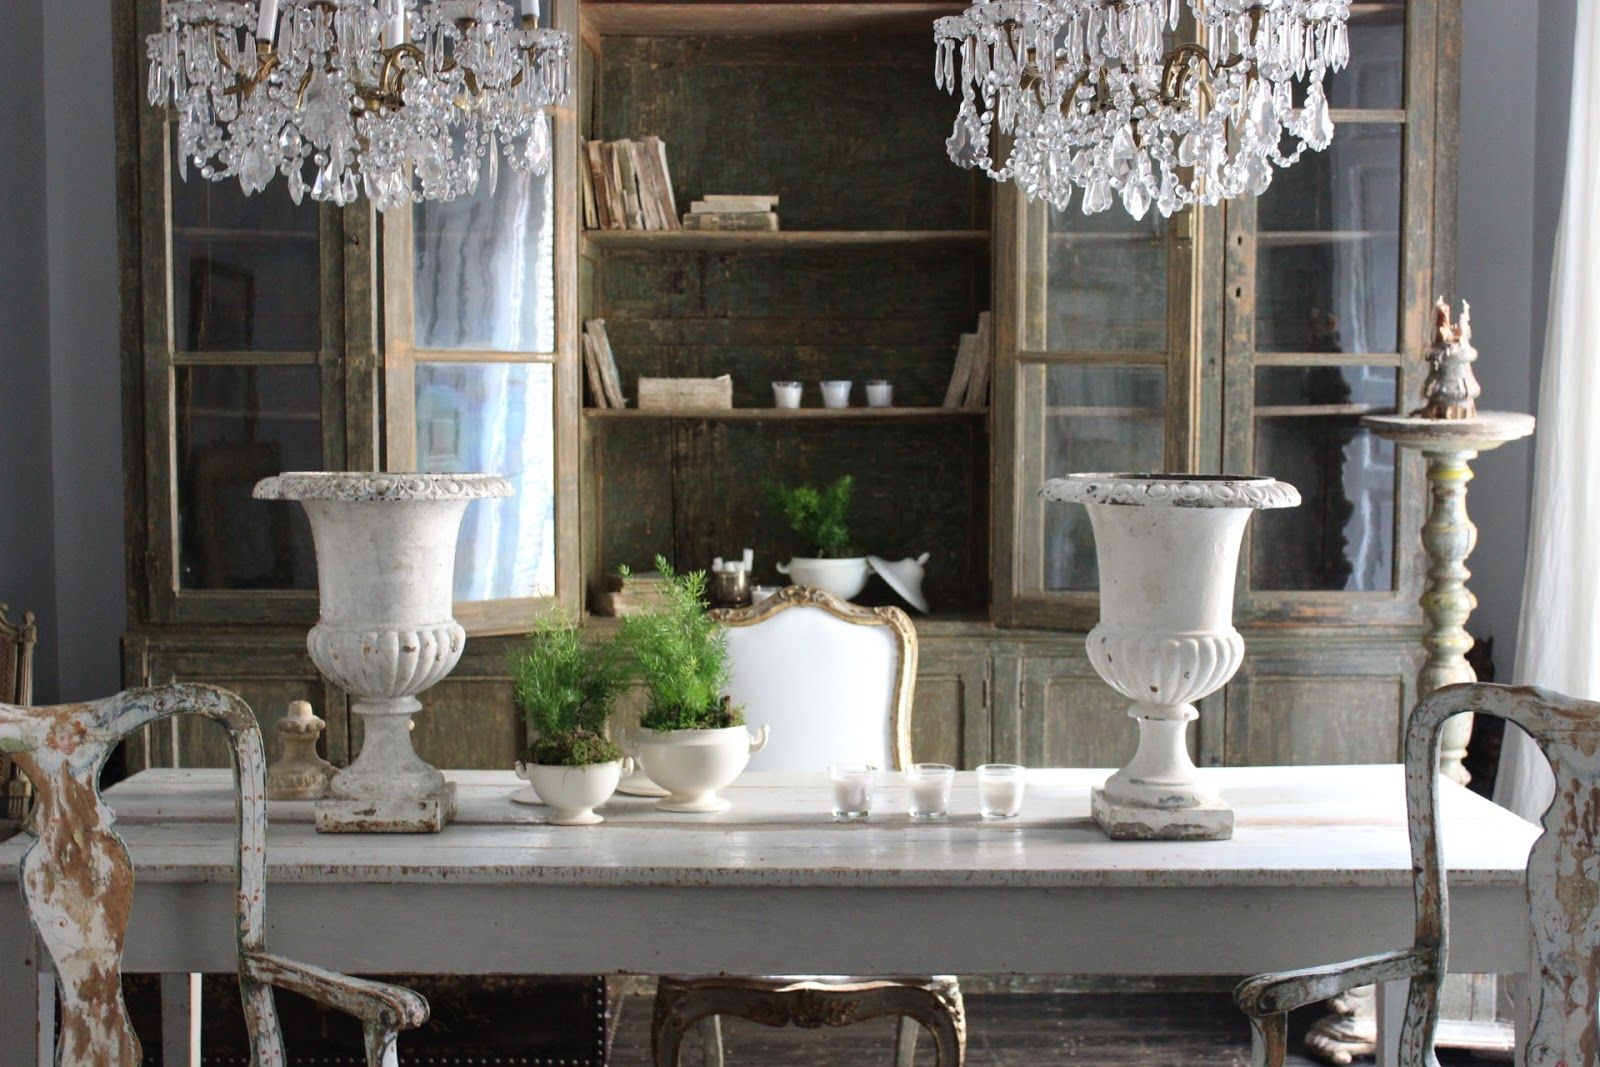 Antiques in the Dining Room